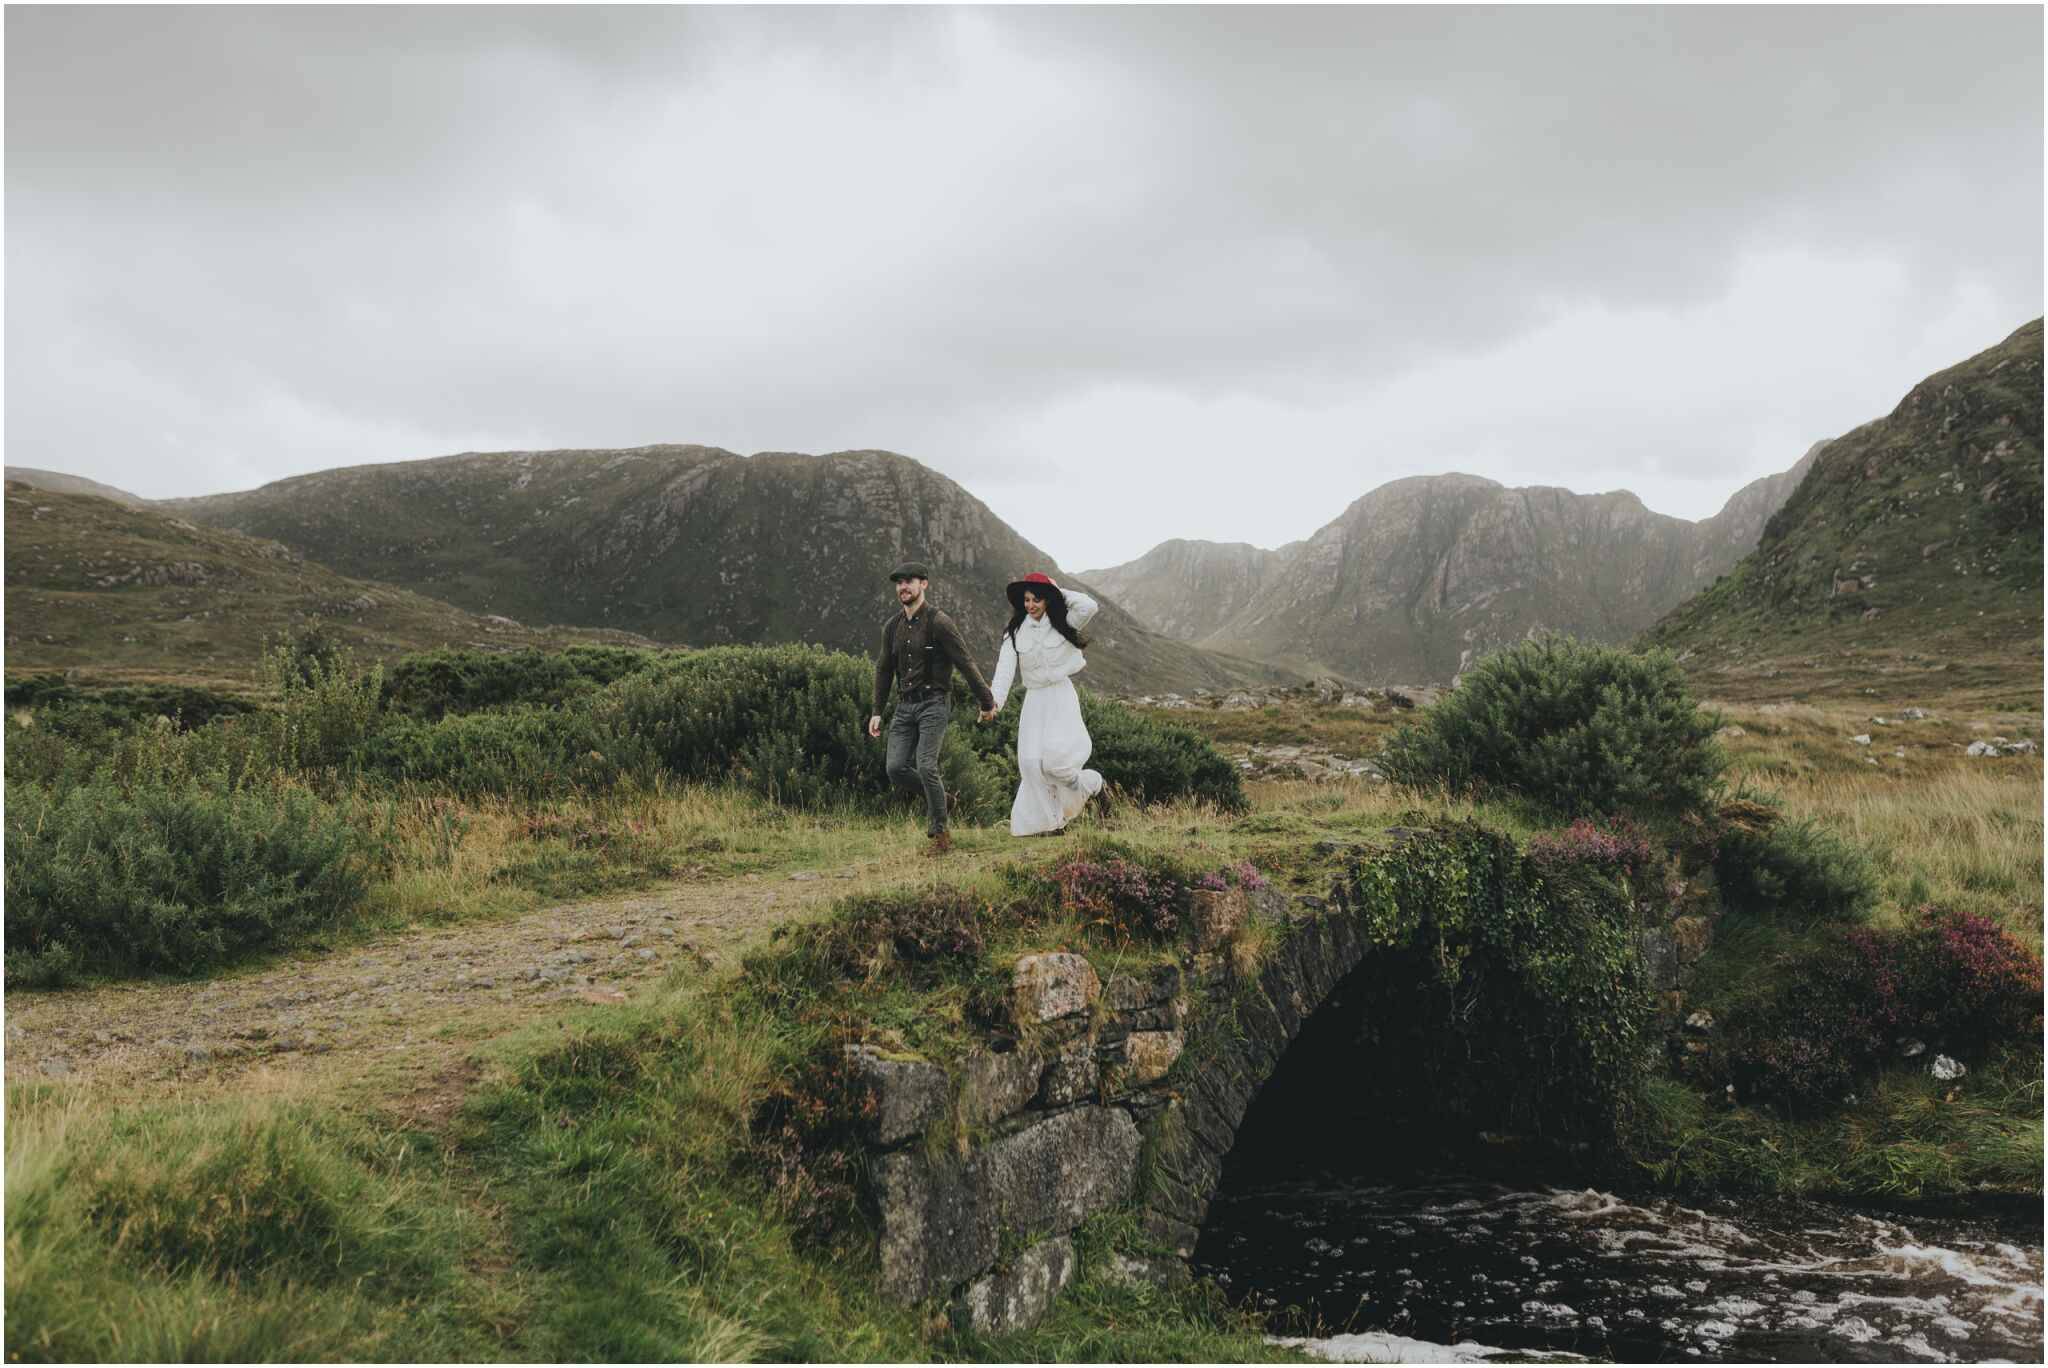 Rachel + David - Hiking Elopement in Muckish Mountain and Poisoned Glen, Donegal 42